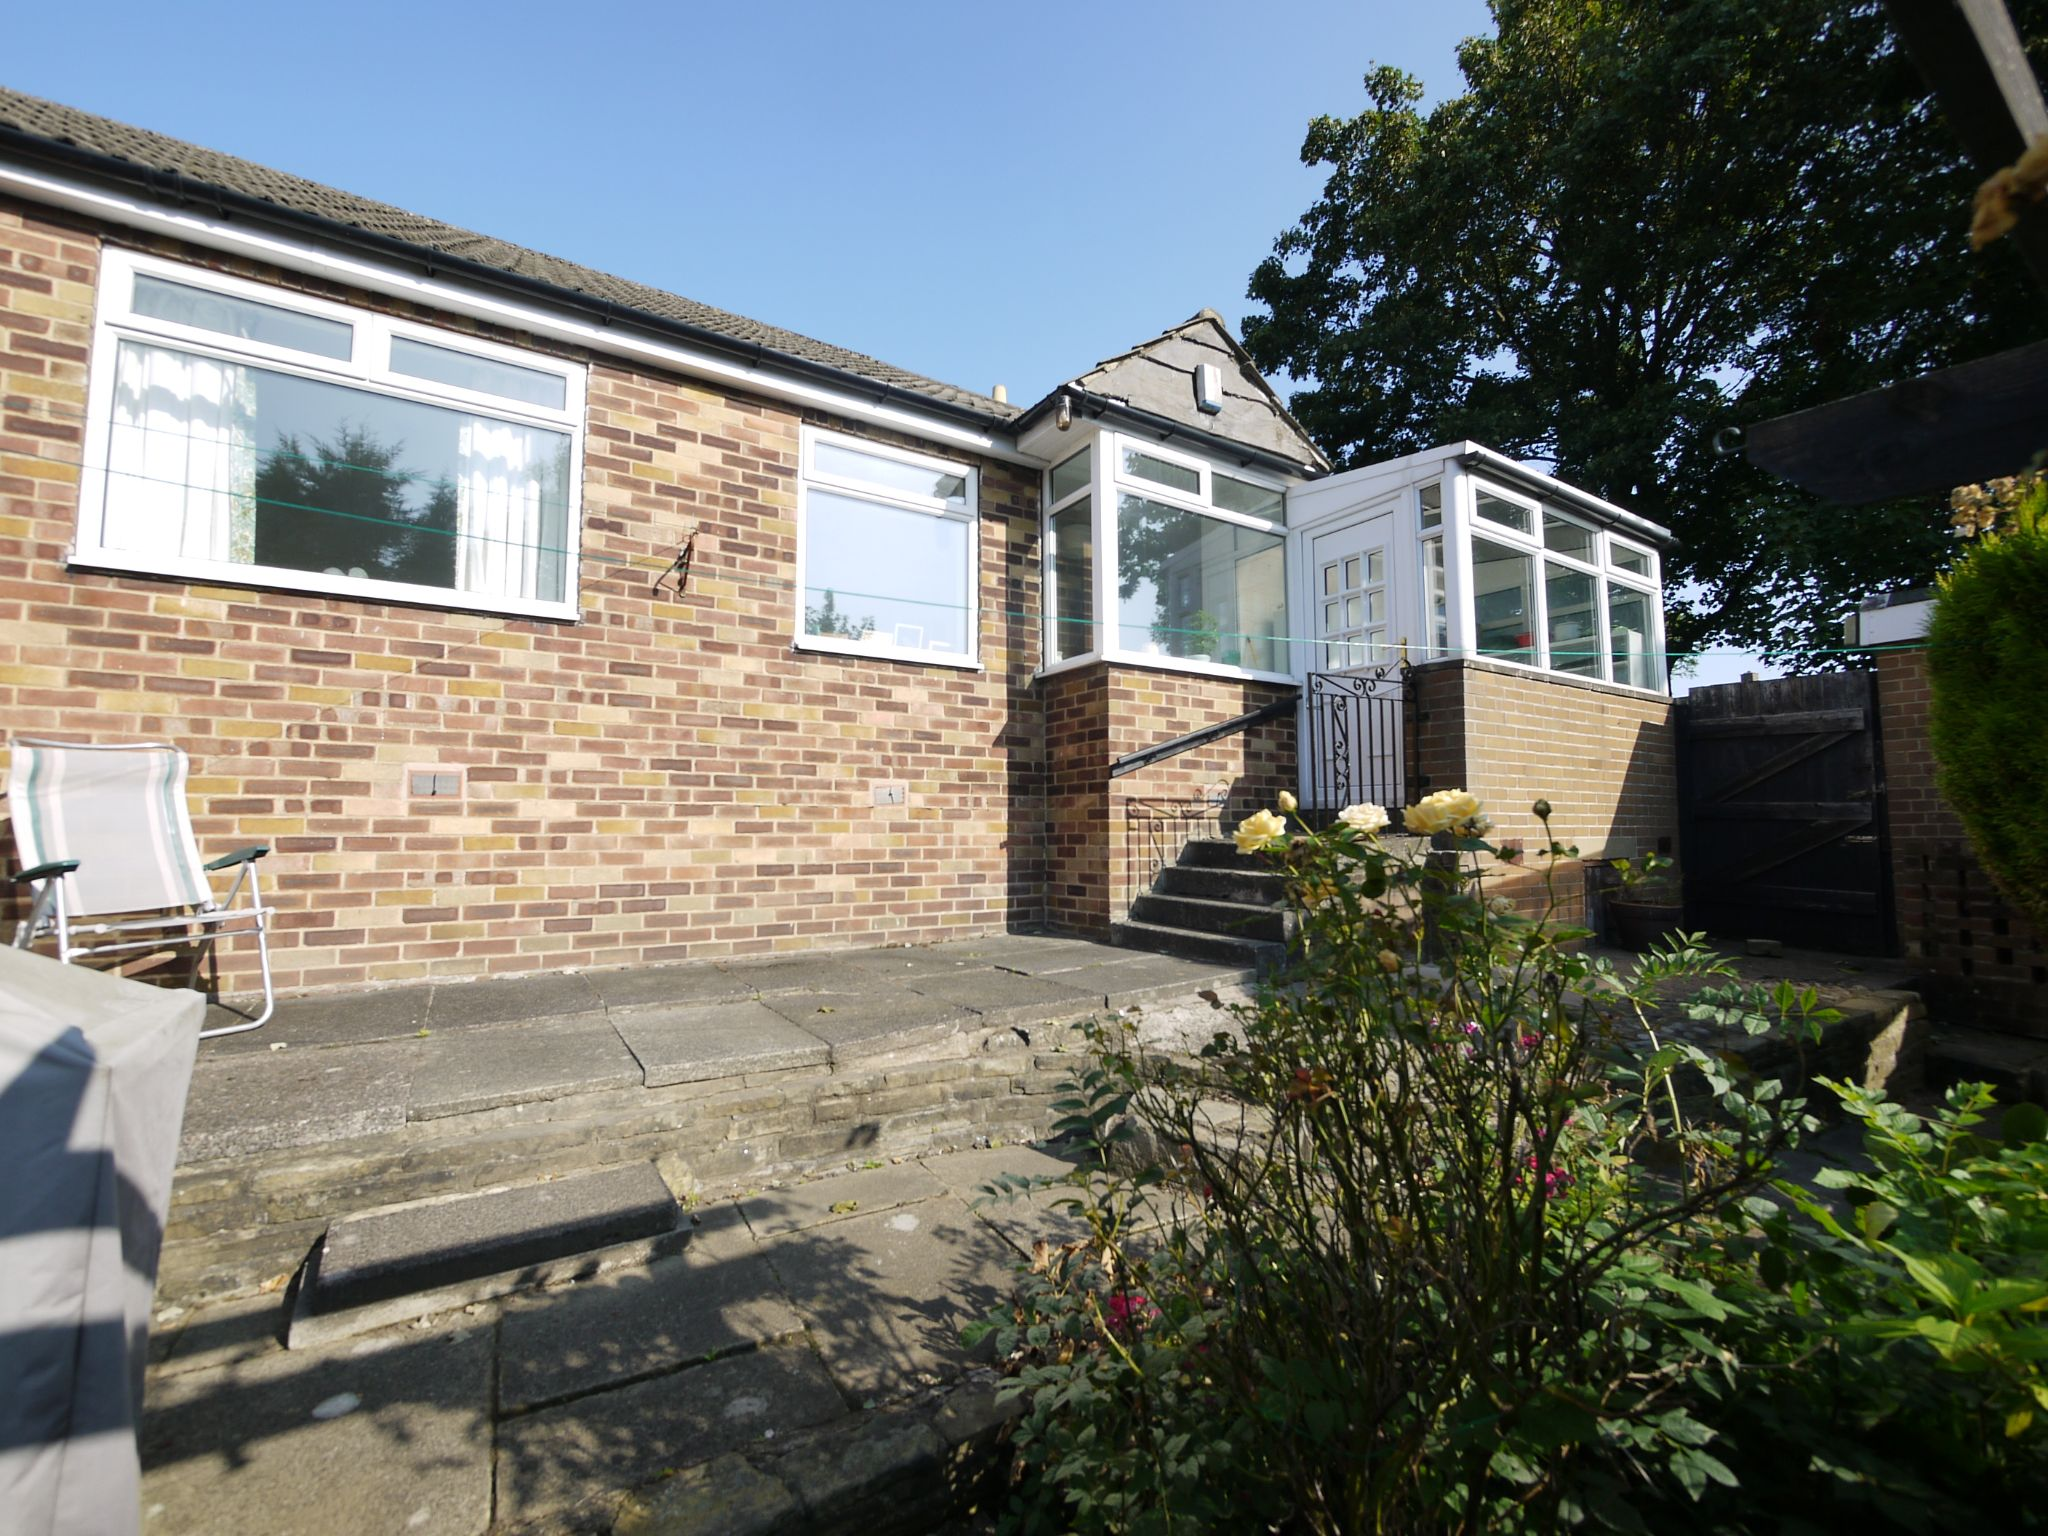 2 bedroom semi-detached bungalow SSTC in Halifax - Photograph 4.